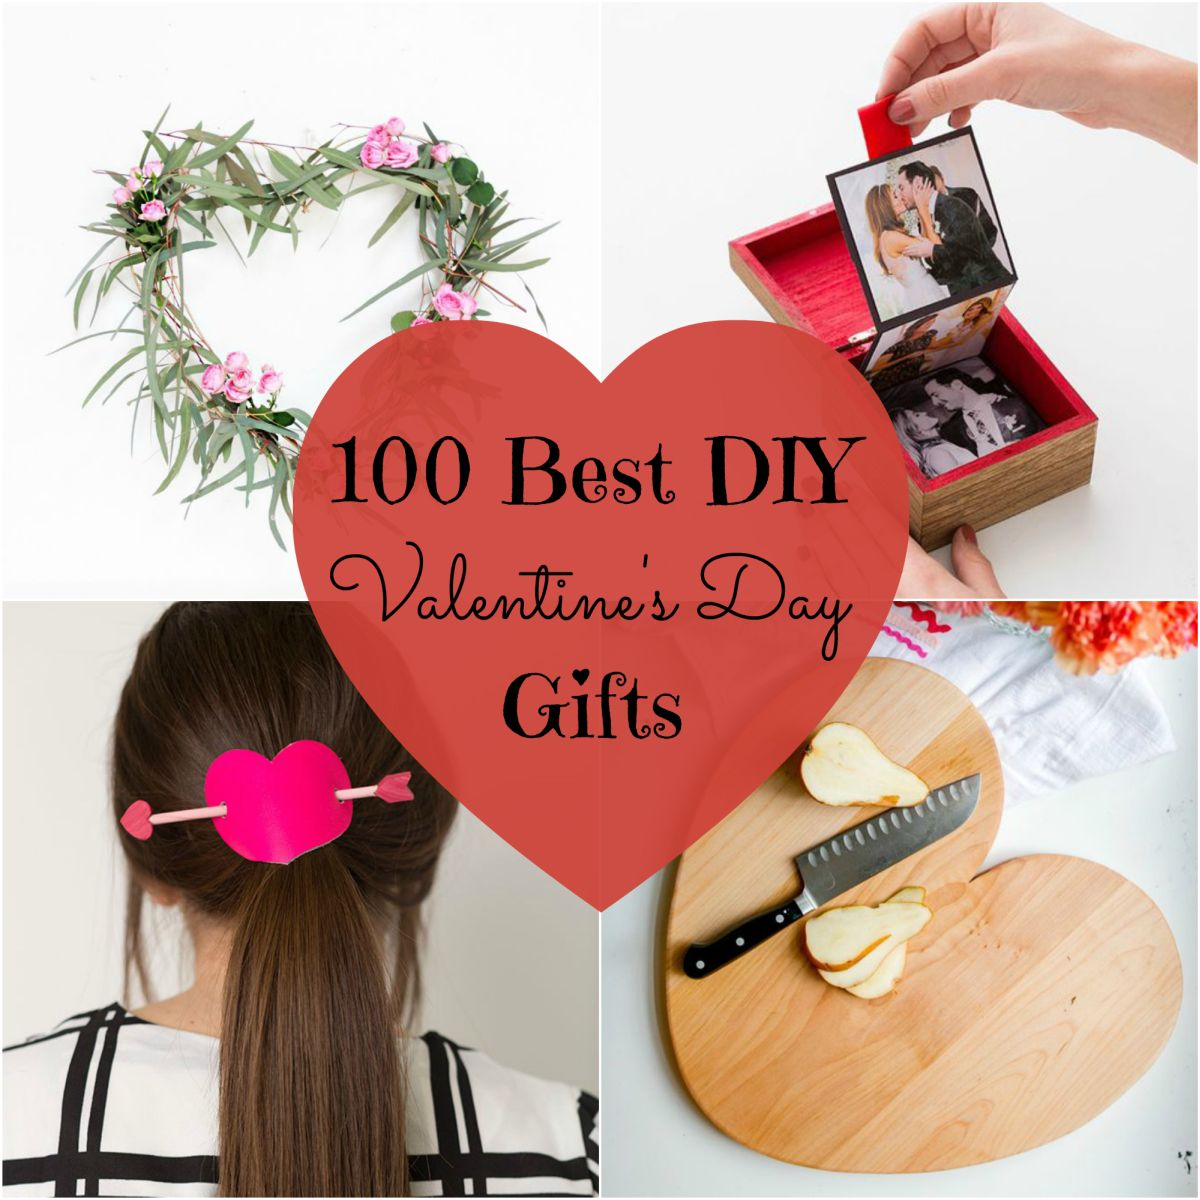 100 best diy valentines day gifts valentiens day gifts cover solutioingenieria Images